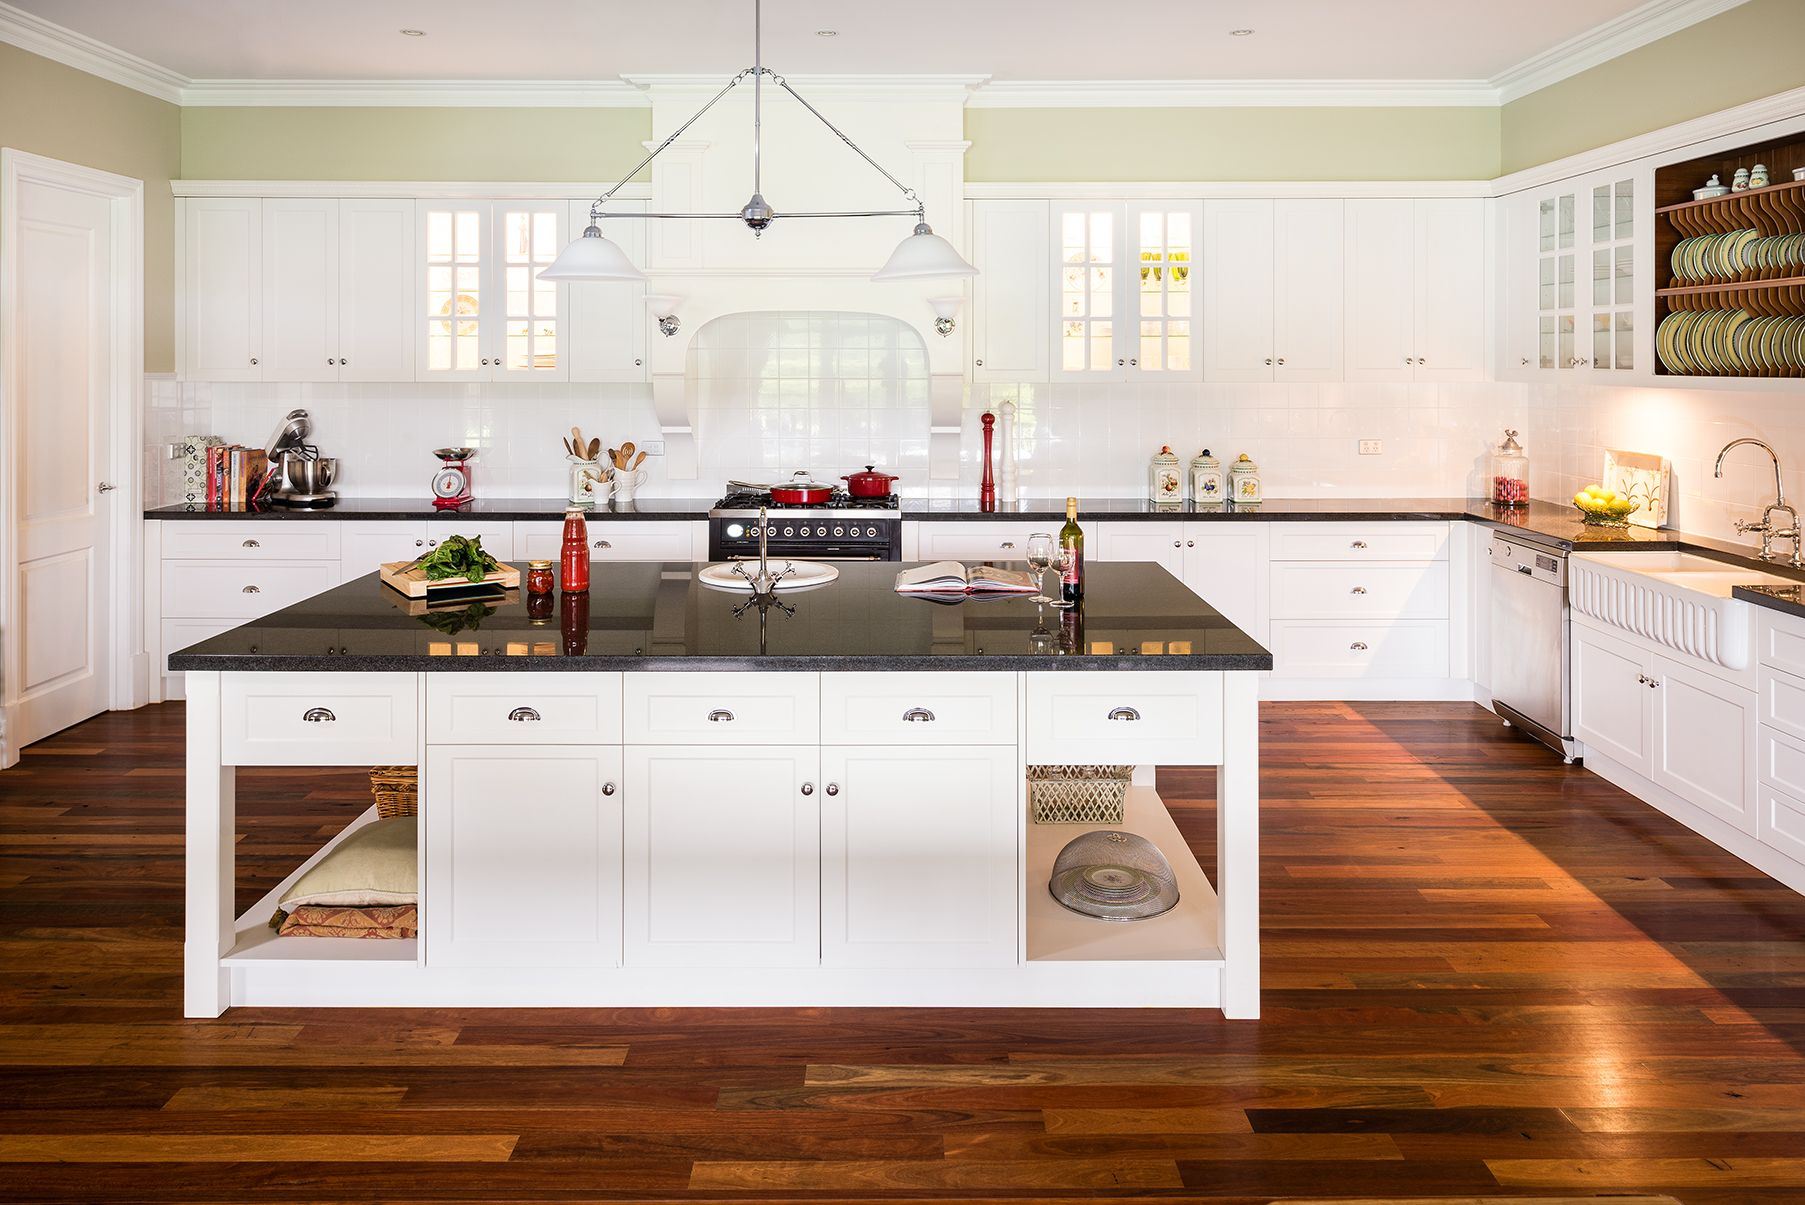 Shaker interior door styles for all tips for achieving classic styling in your home